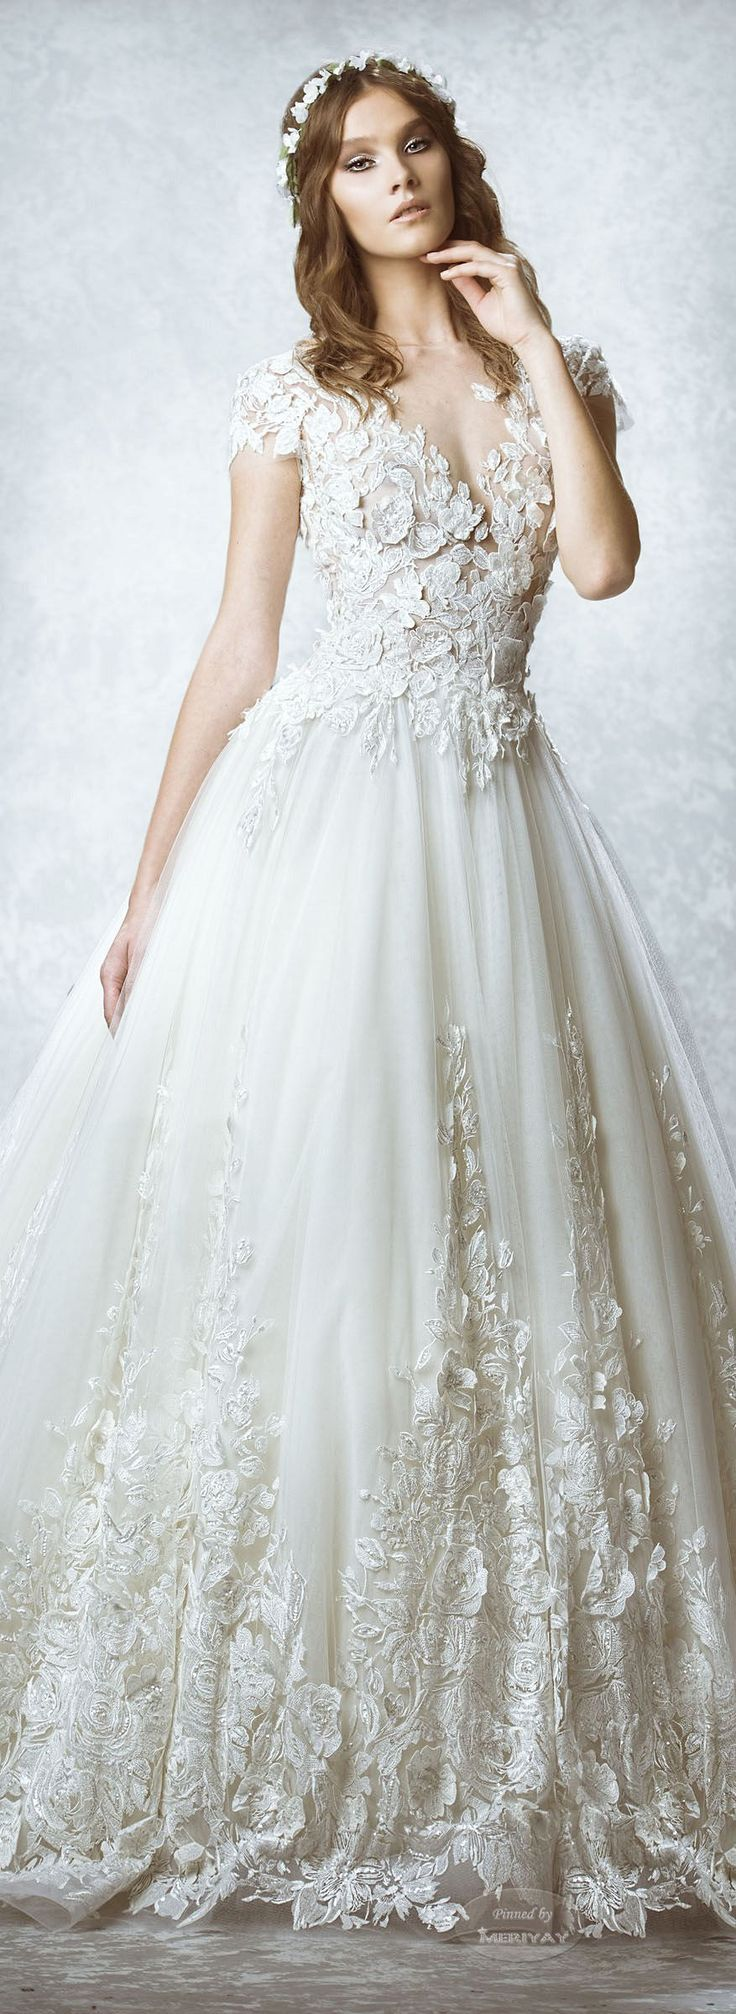 Goodliness wedding dresses designer unique gown gg